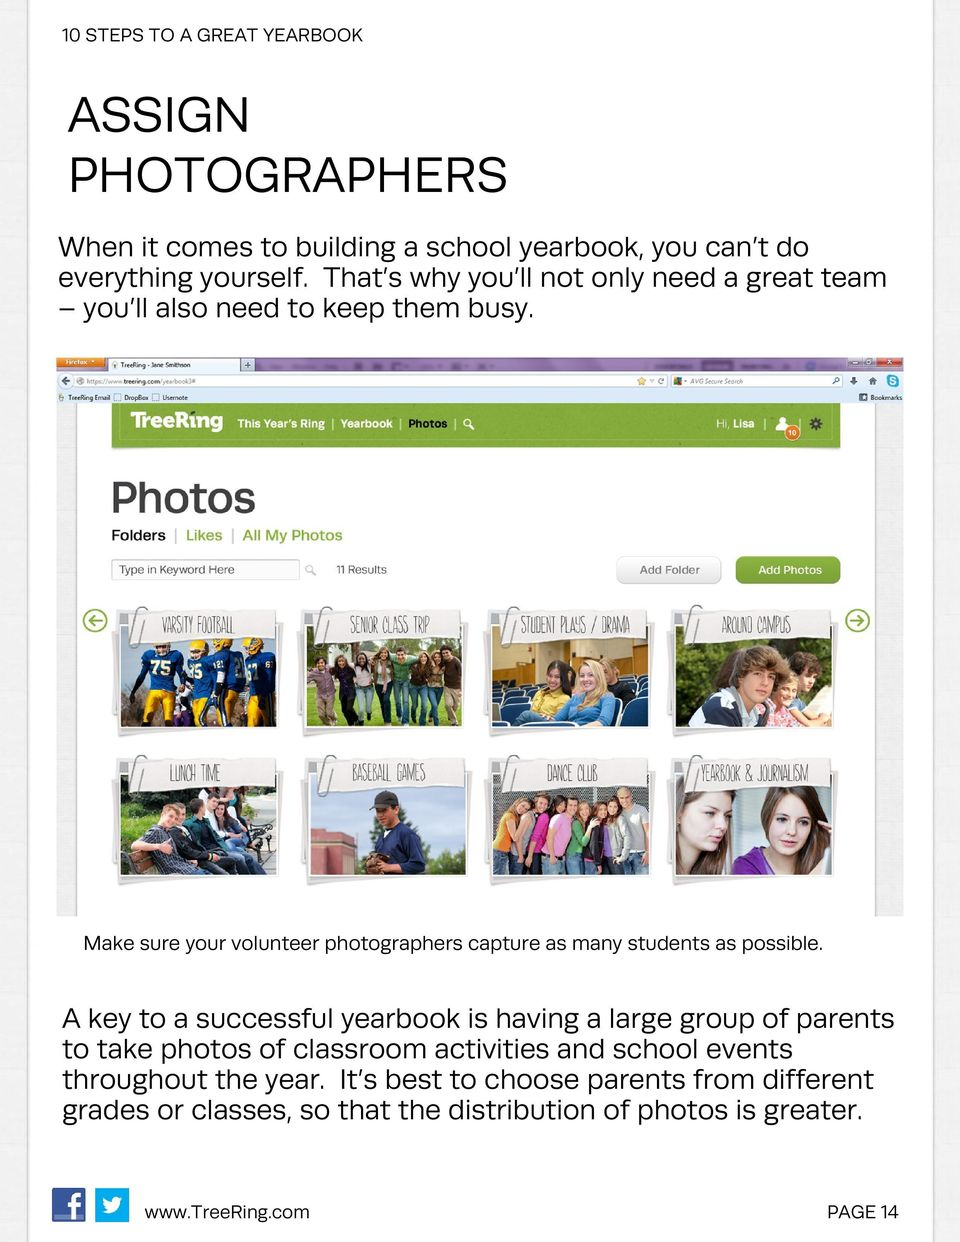 Make sure your volunteer photographers capture as many students as possible.